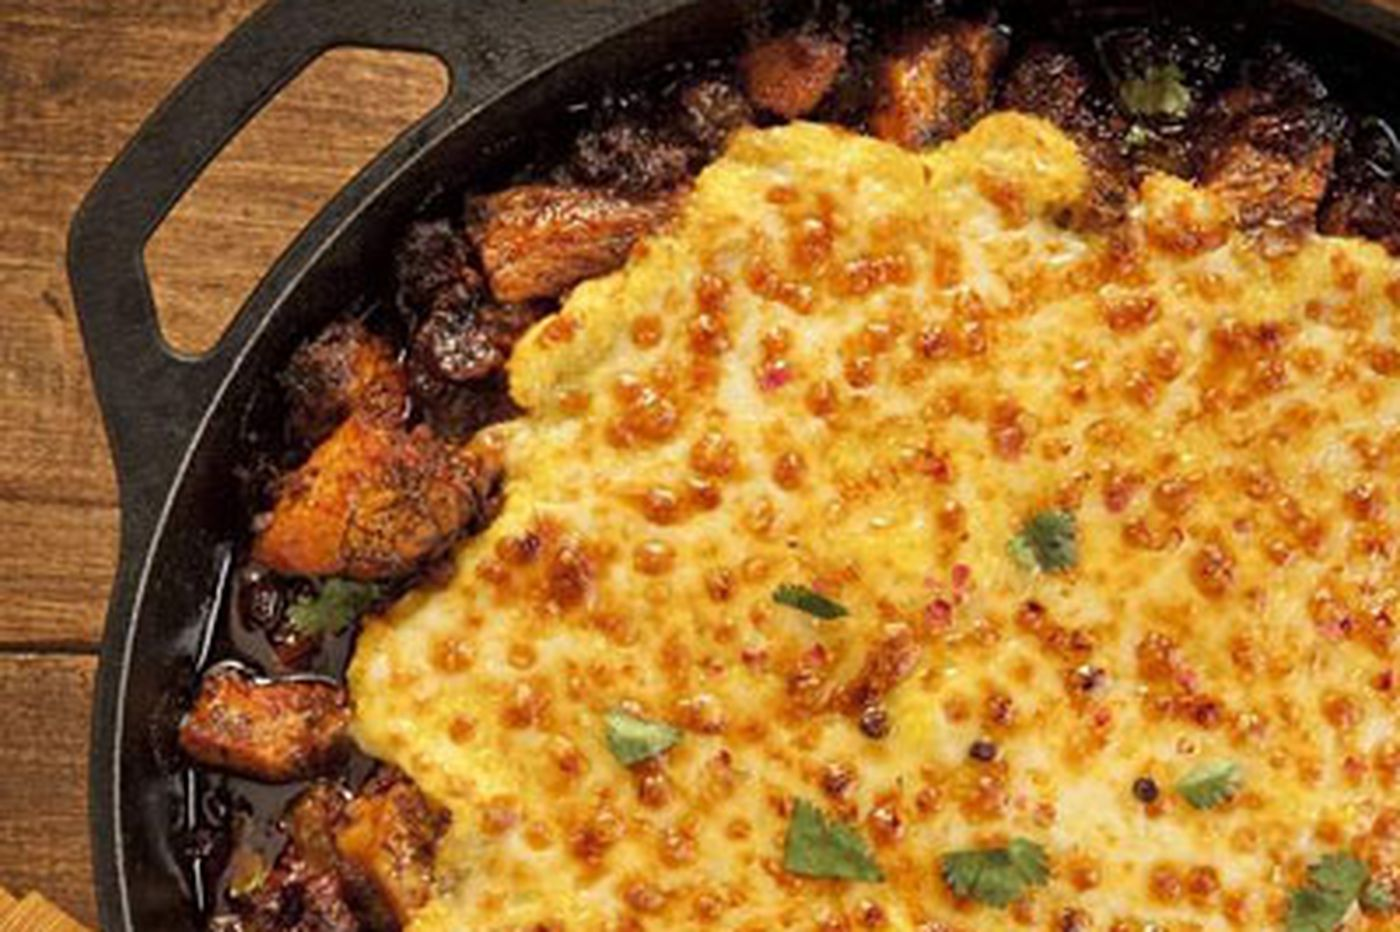 The cast-iron skillet a top choice for Southern cooks